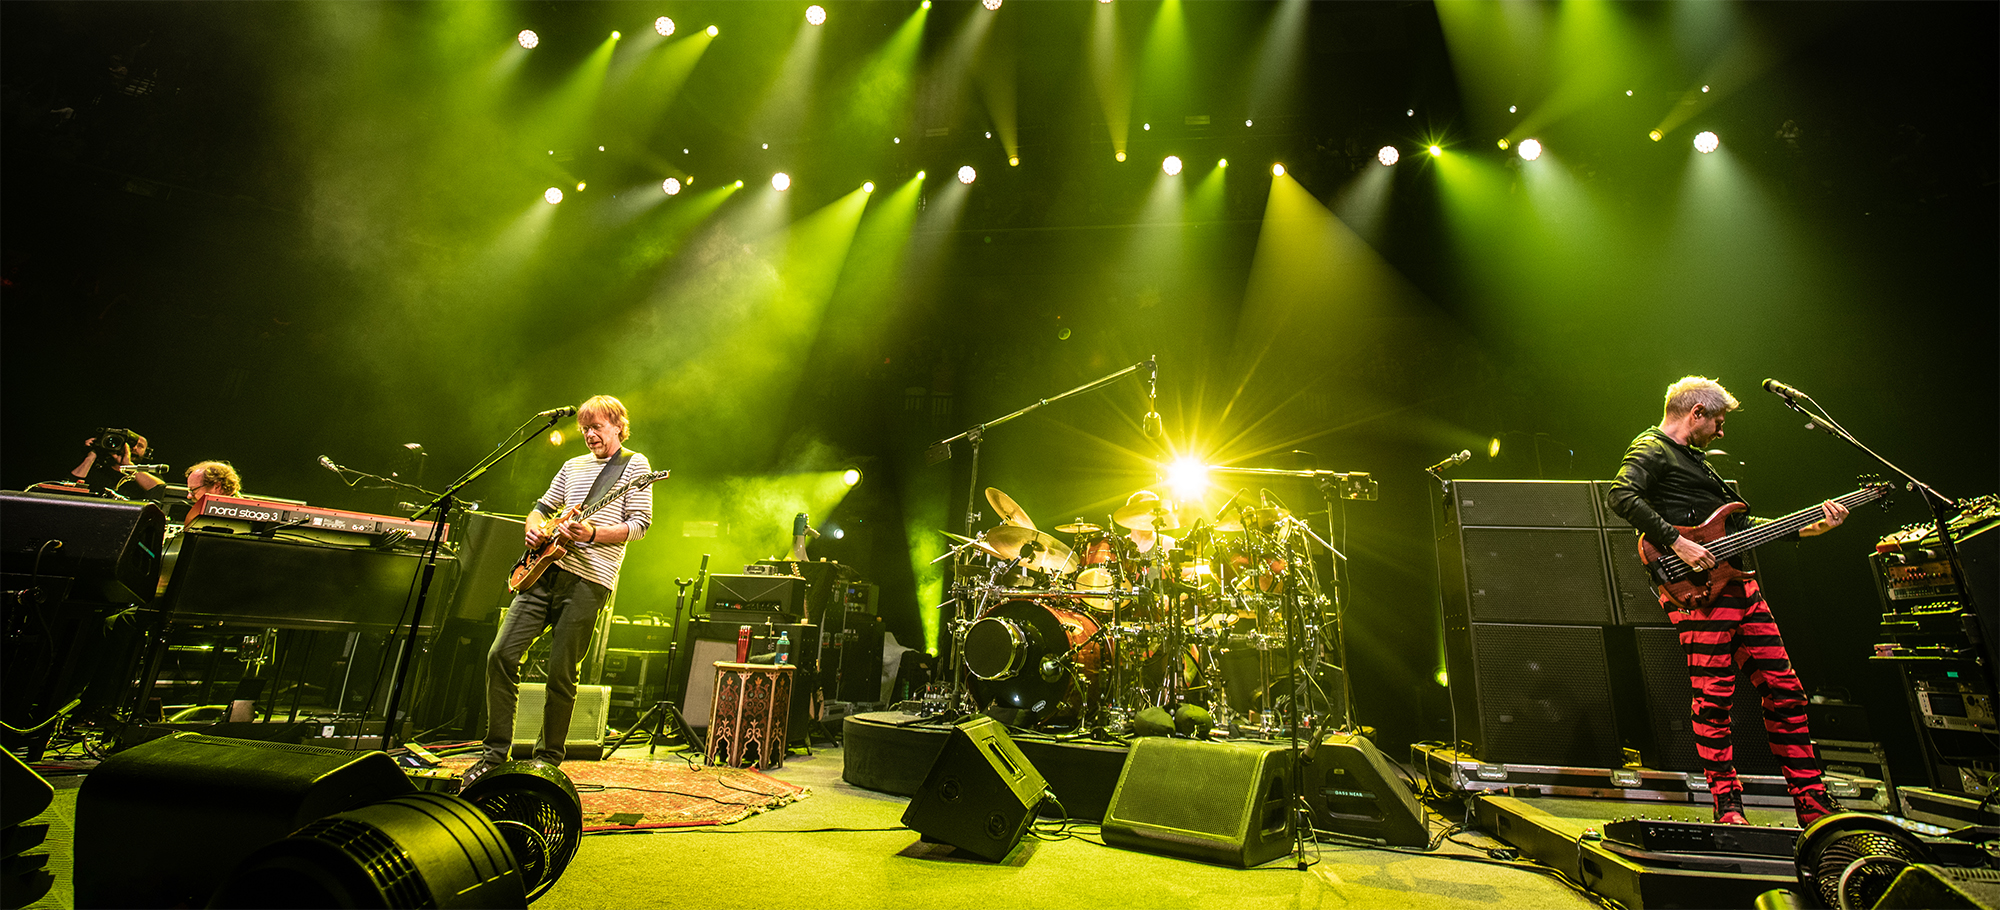 Phish Announce Special One Night Only Performance The Met Philly For SiriusXM